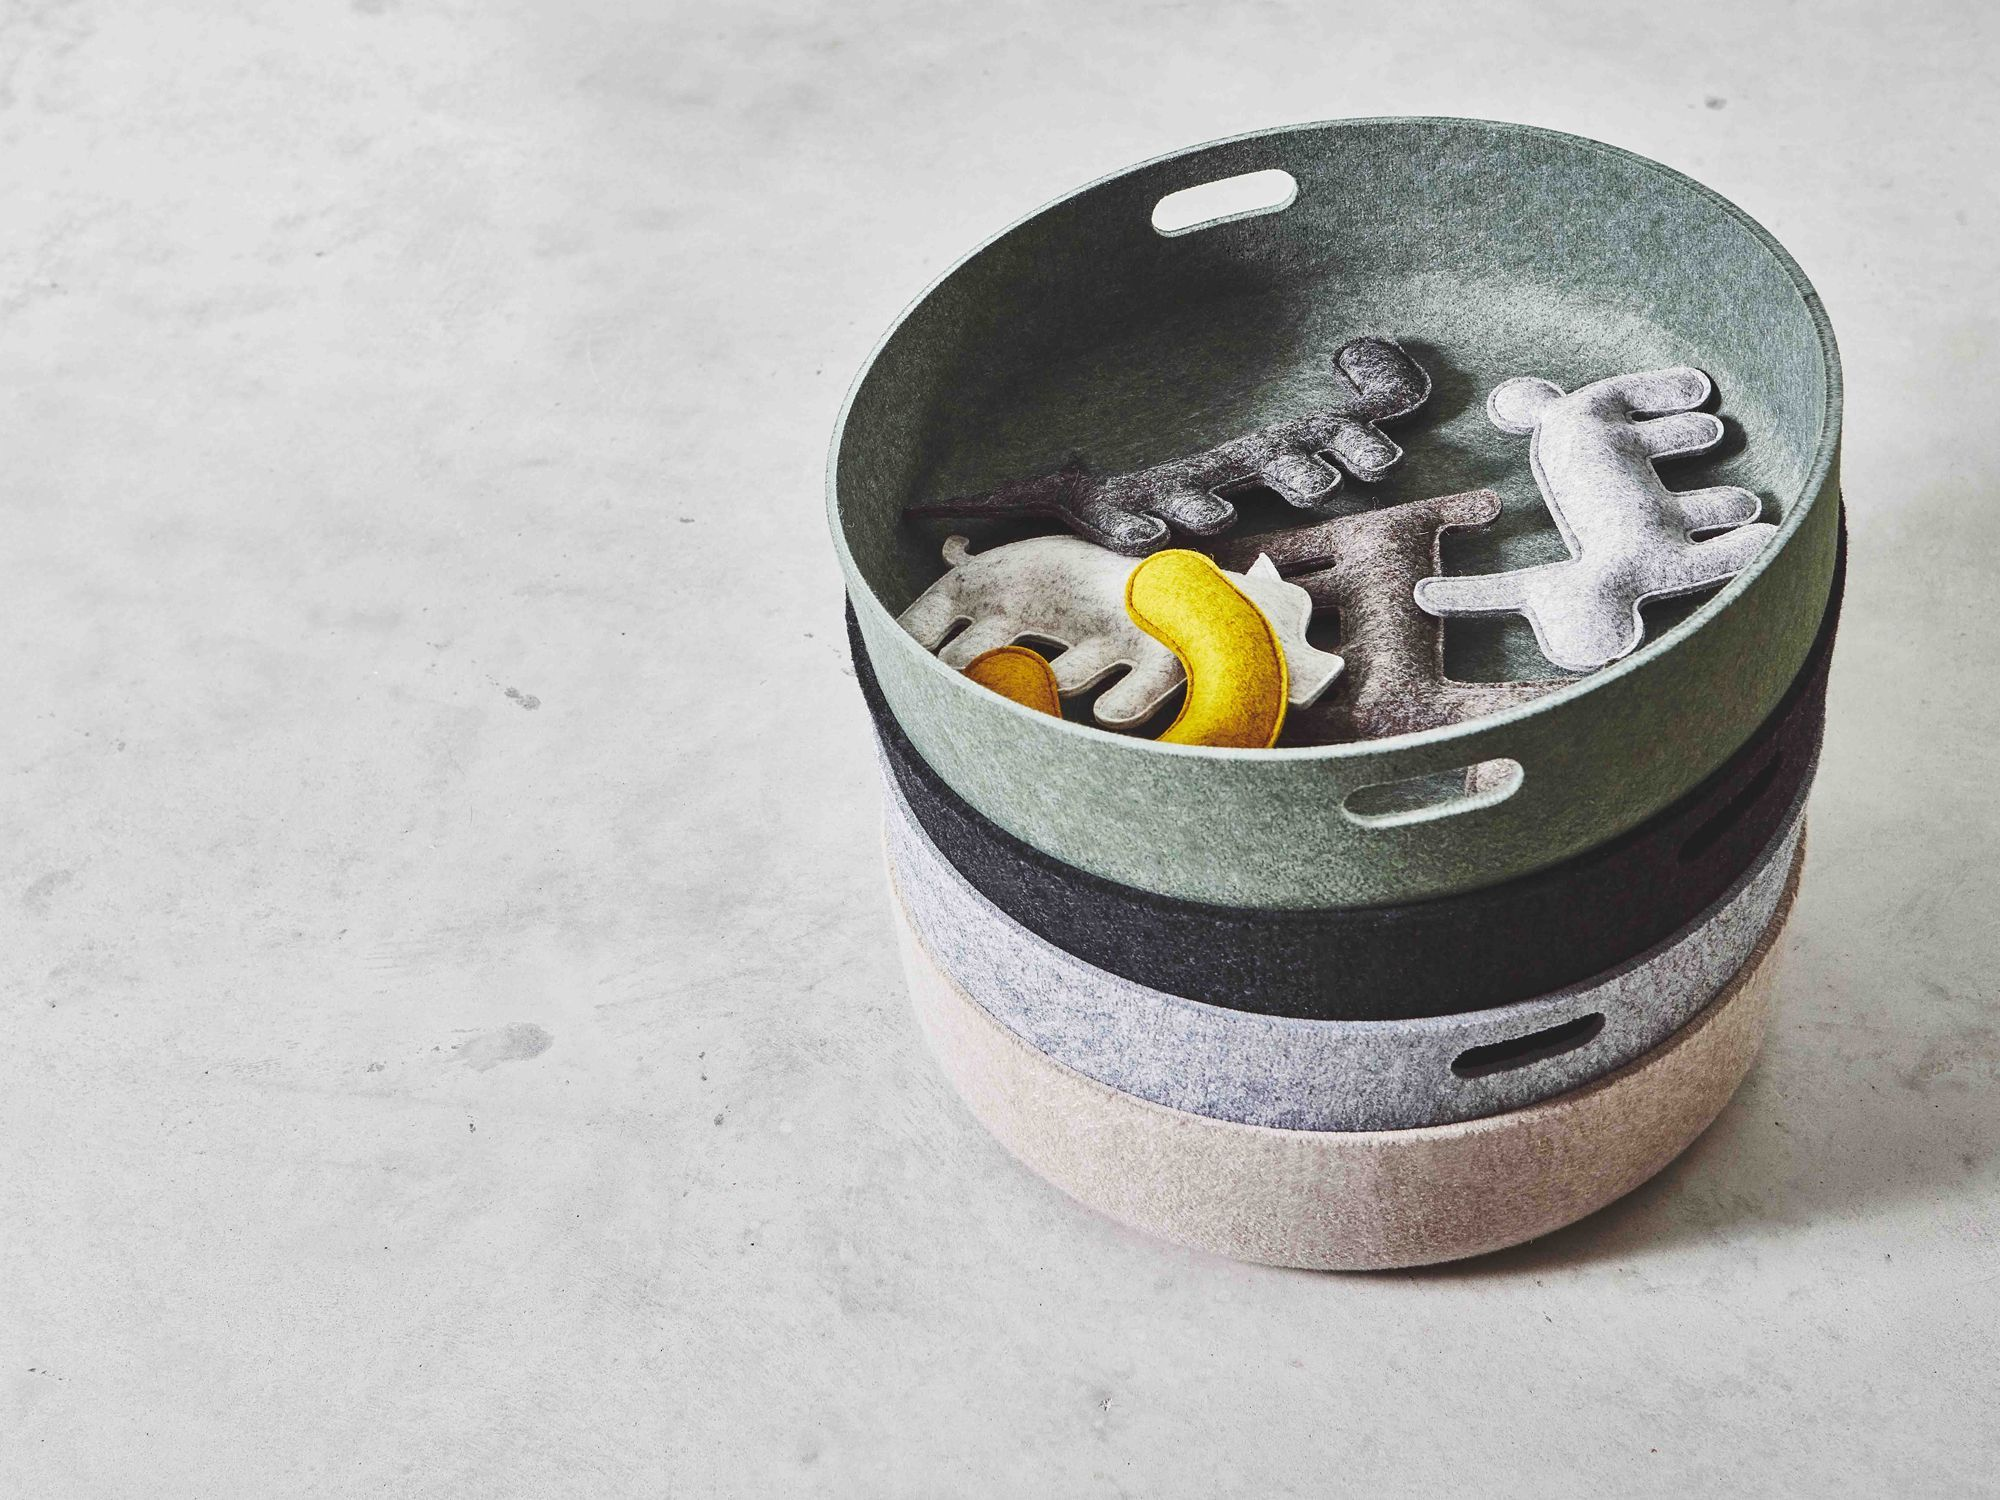 MiaCara Cesto toy basket by Hans Thyge & Co, available from Danish Design Co